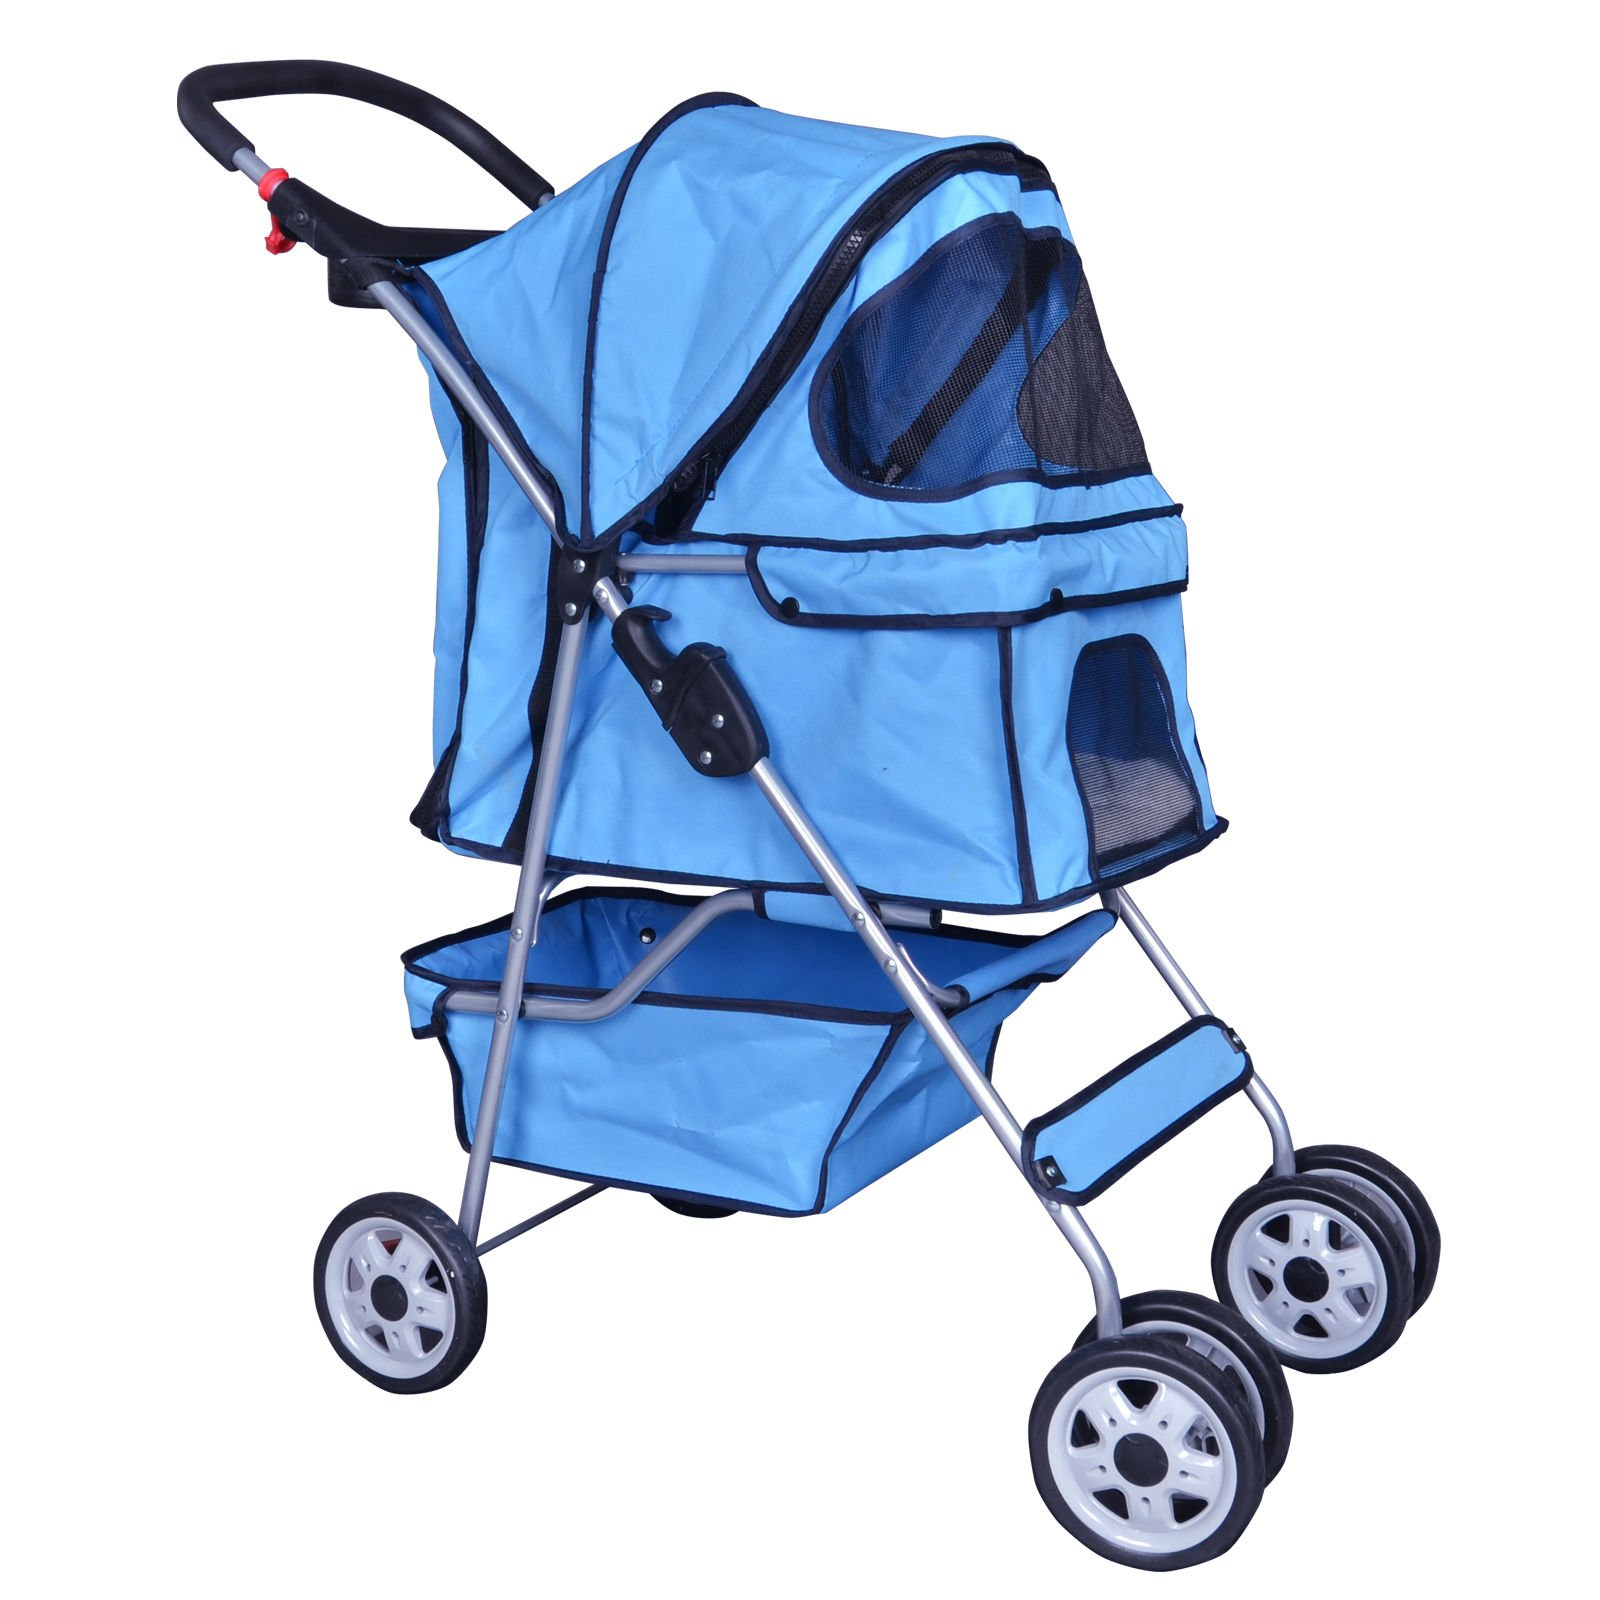 BestPet 4 Wheels Pet Stroller Cat Dog Cage Stroller Travel Folding Carrier 04T